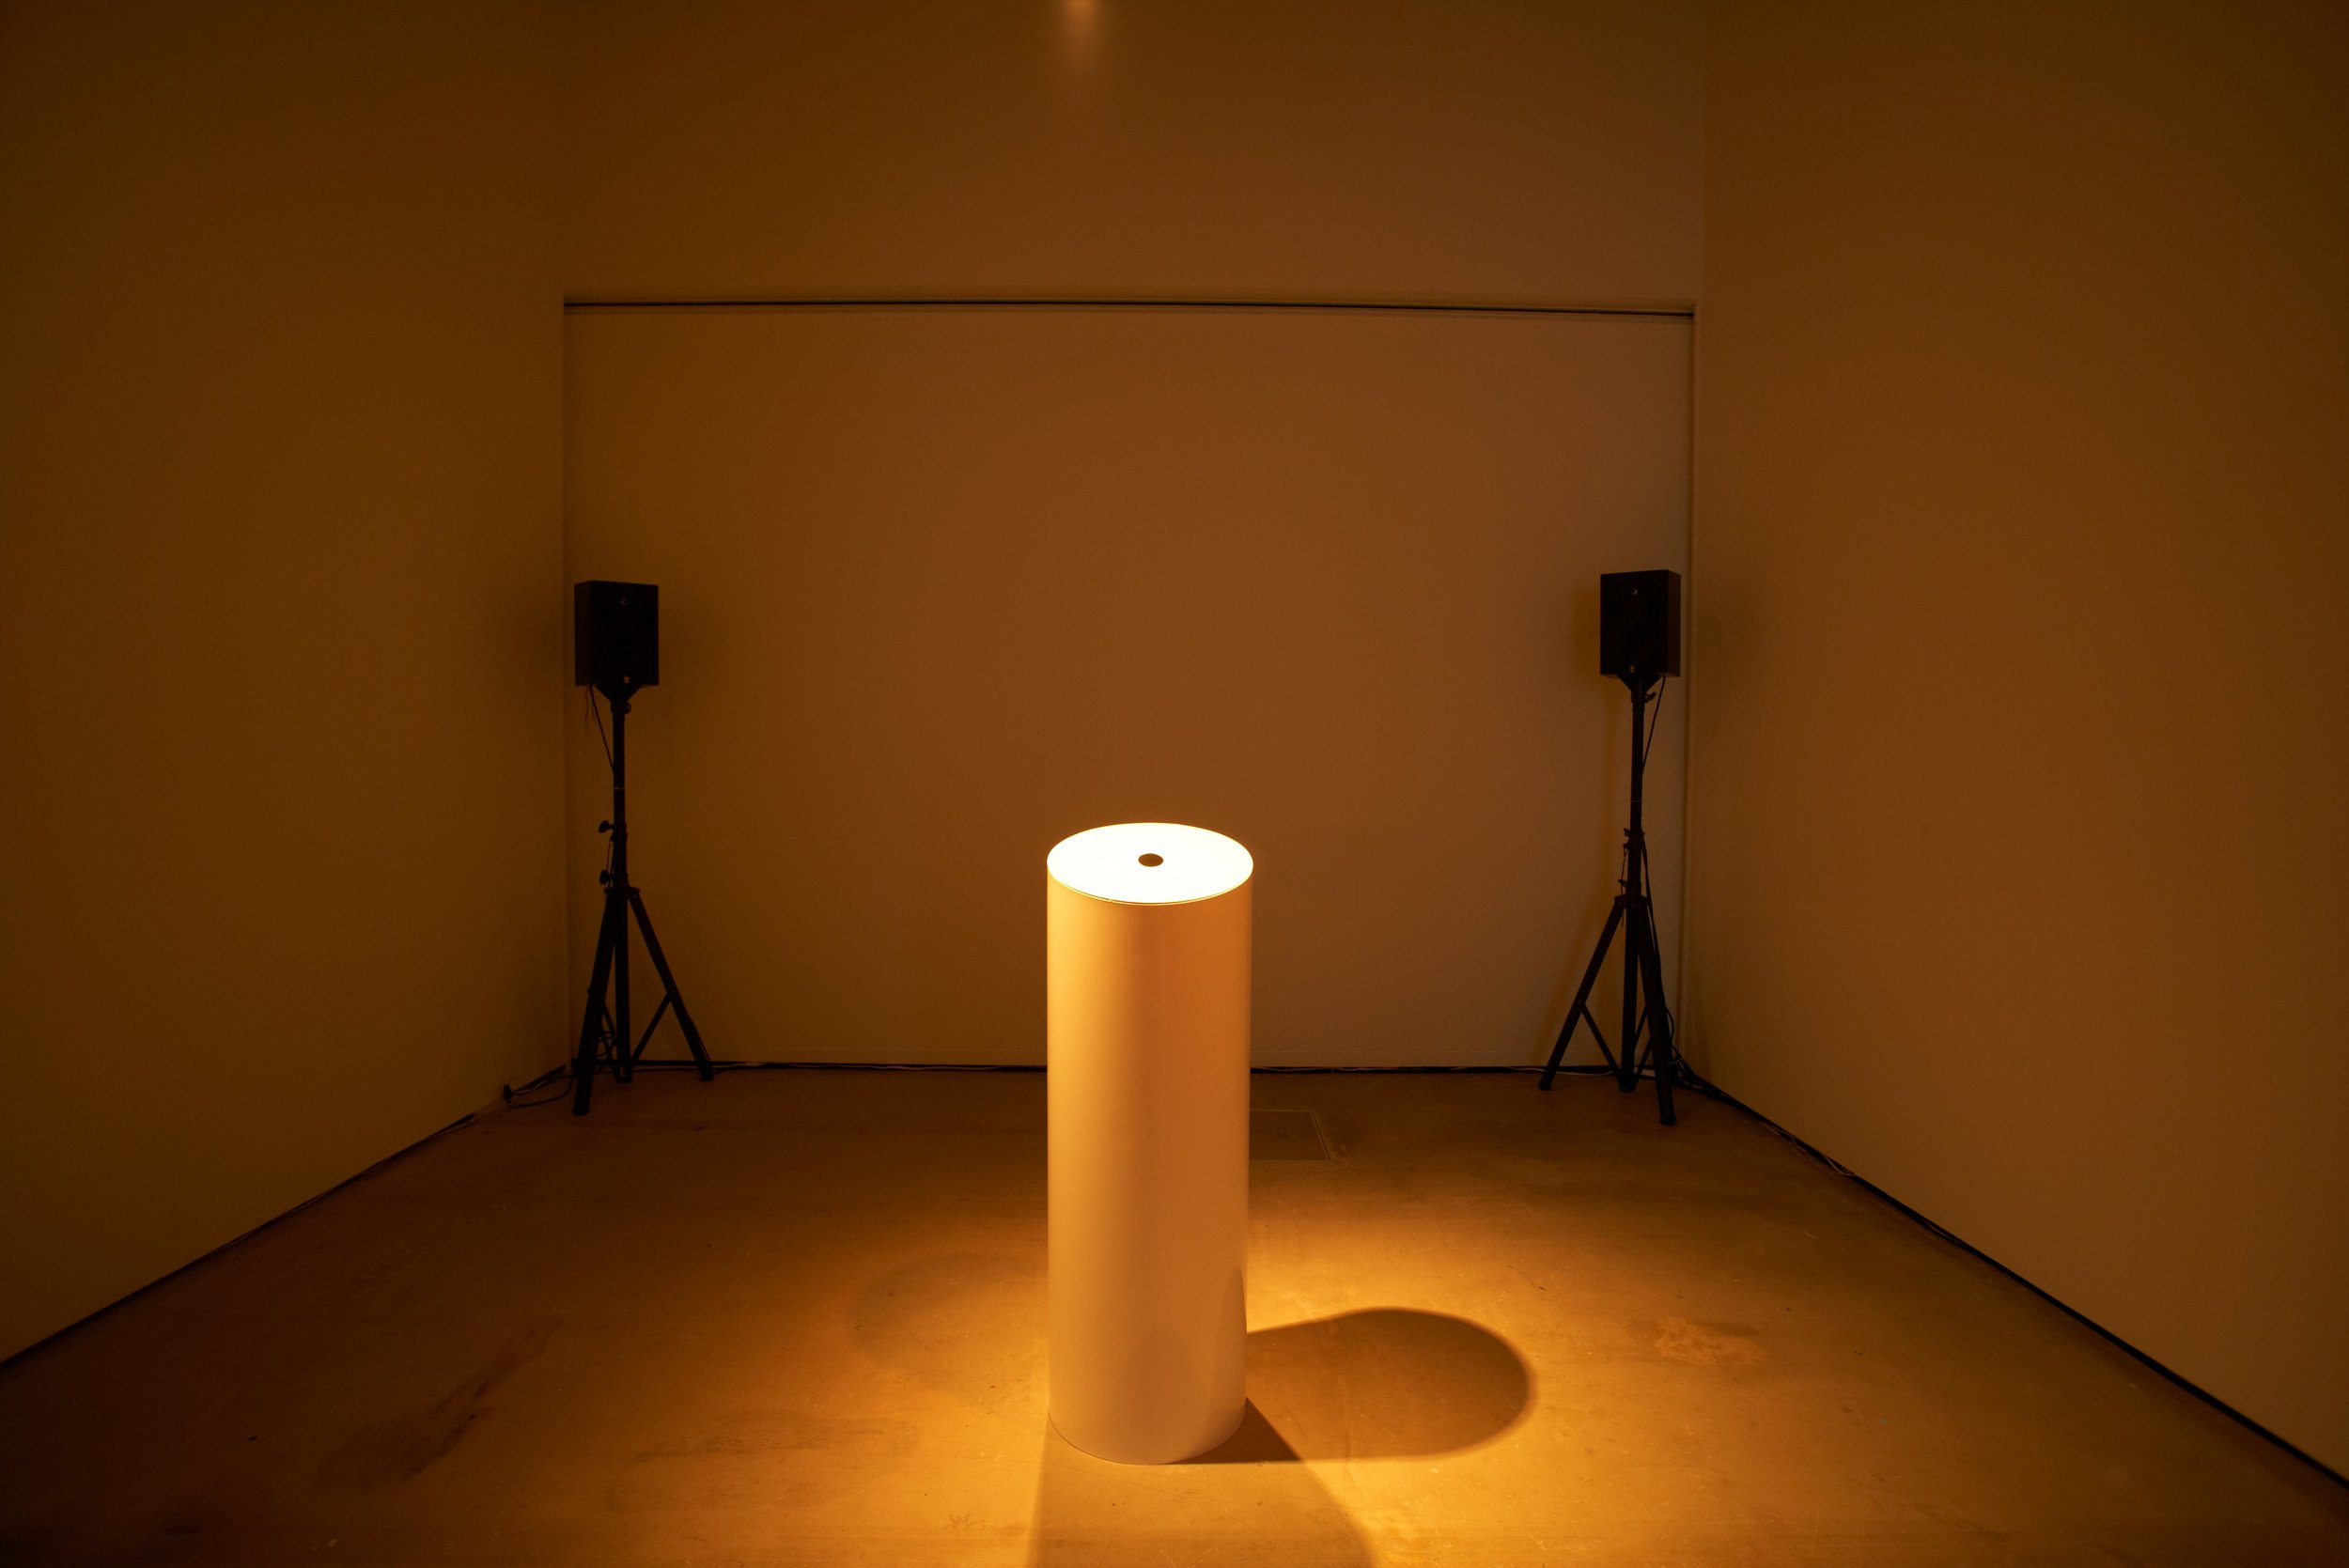 Breathing Room, 2011. Installation view. Photos: T. Suda. Courtesy of Tokyo Wonder Site.